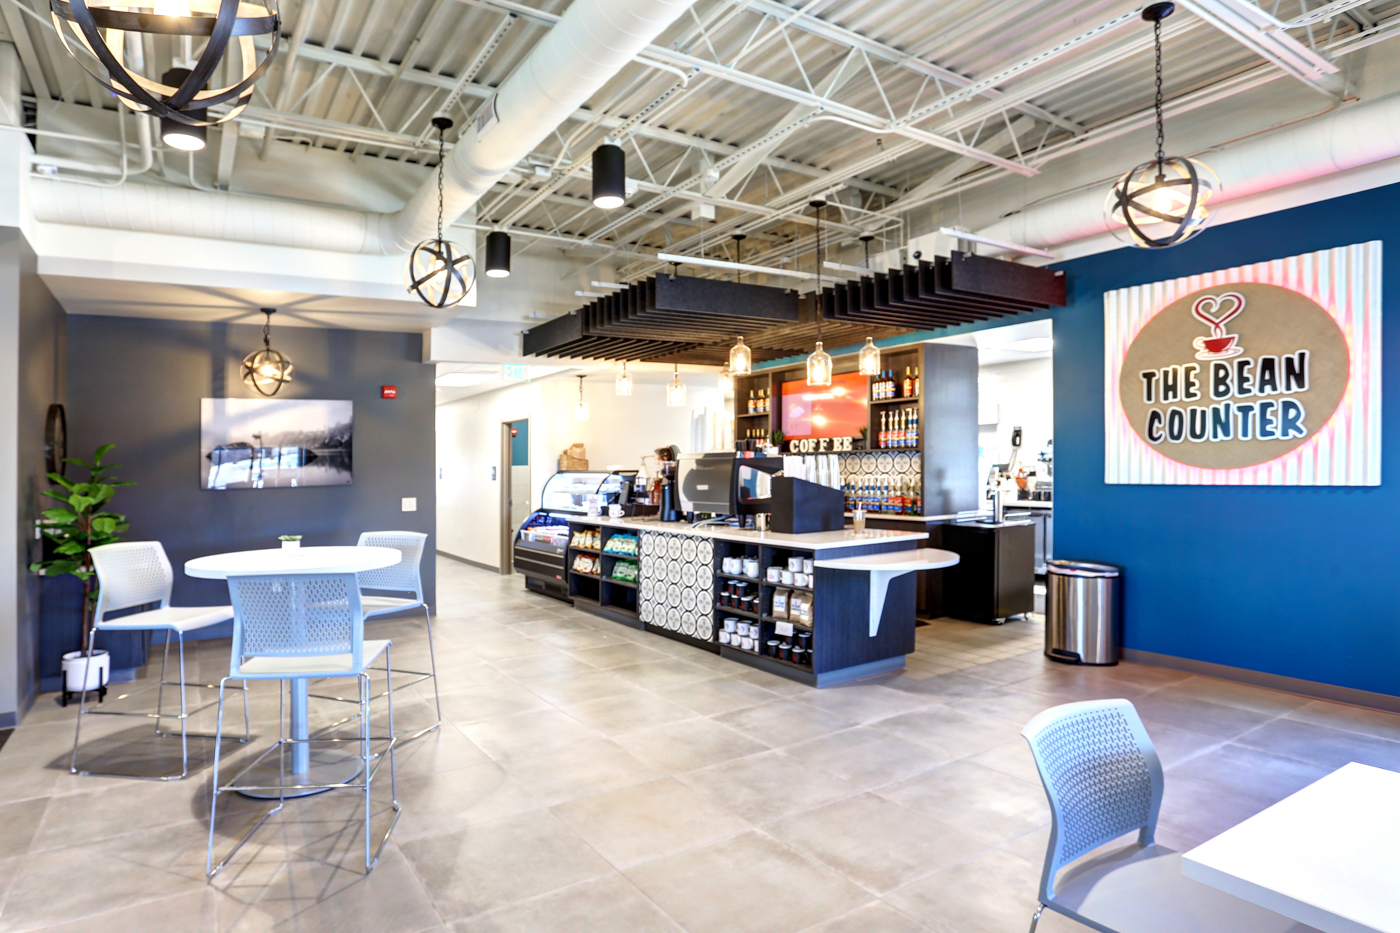 The Bean Counter, co-branded with Med5 Credit Union